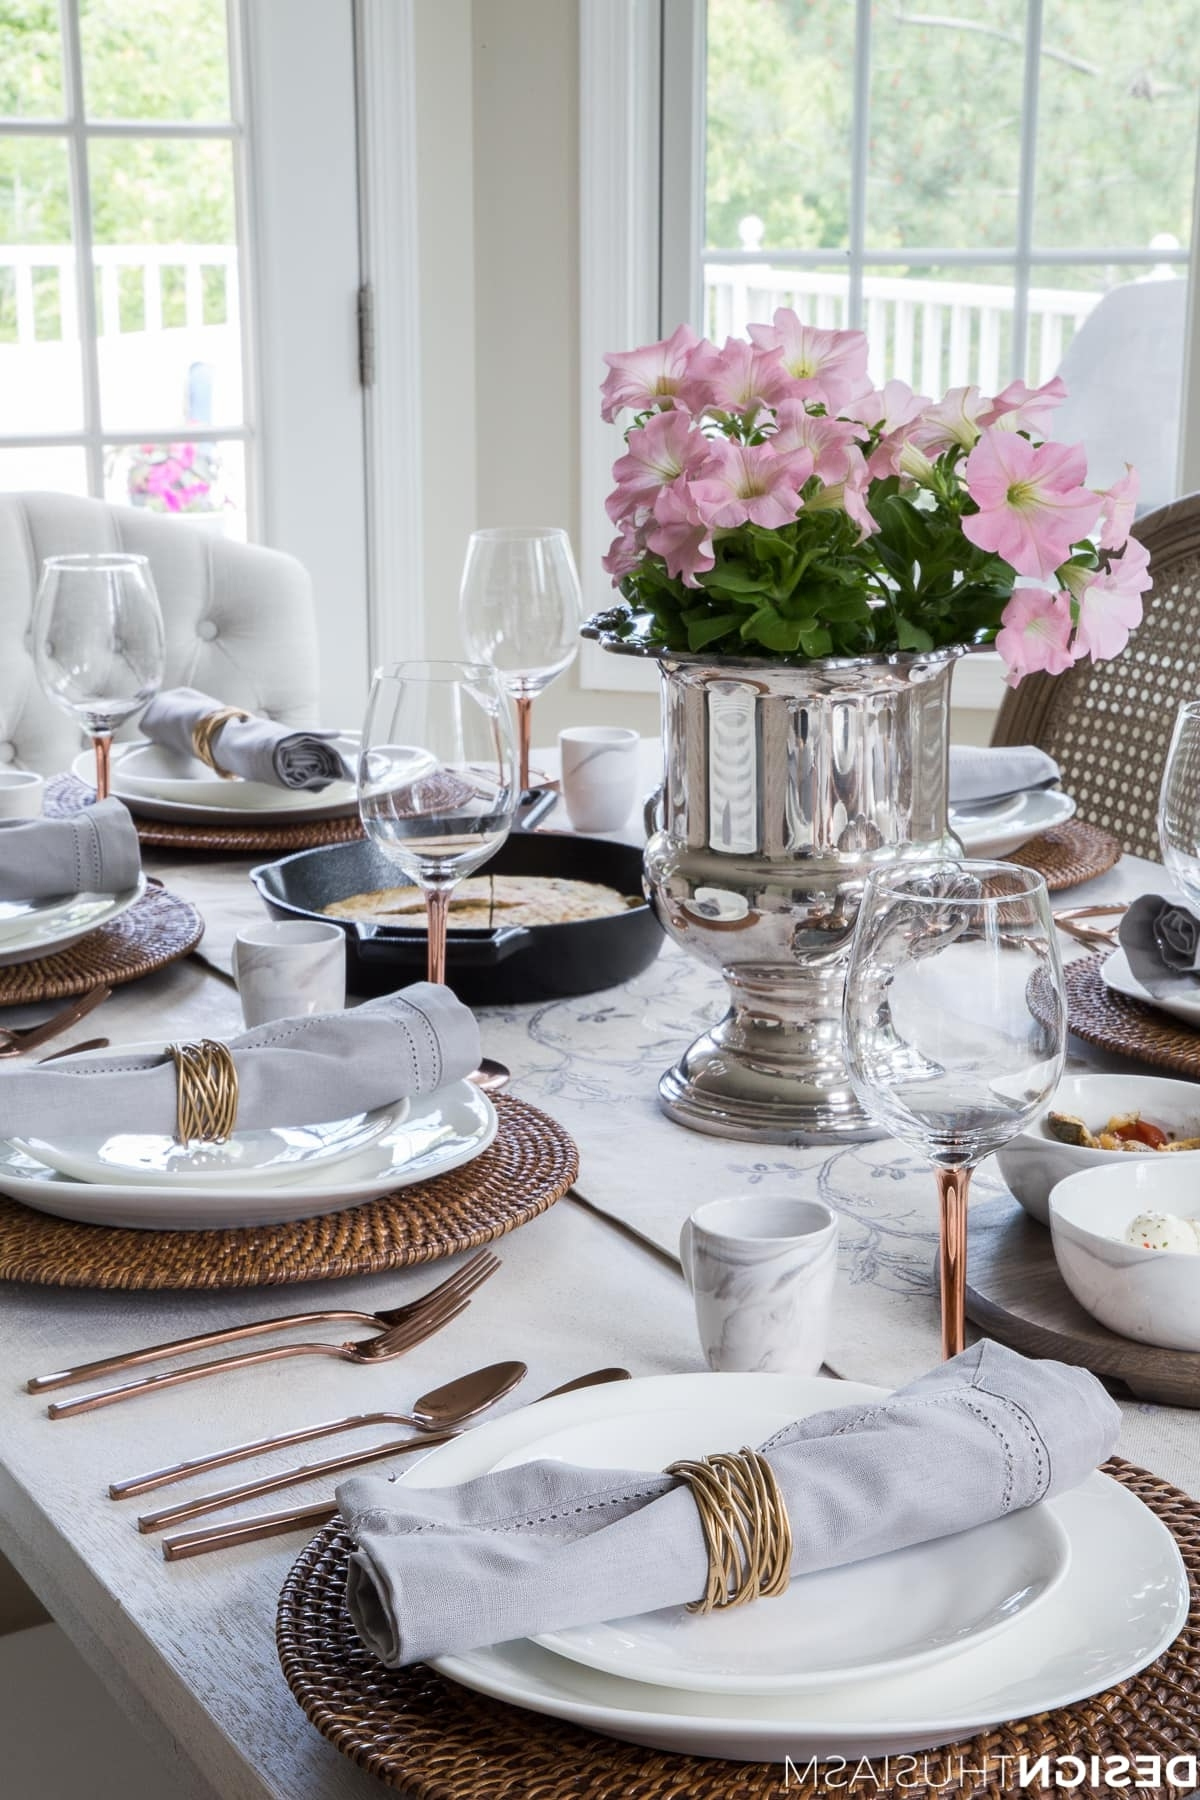 2017 Artisanal Dining Tables With Regard To Staycation Ideas: Set An Artisanal Table For A Pampered Vacation At Home (View 1 of 25)